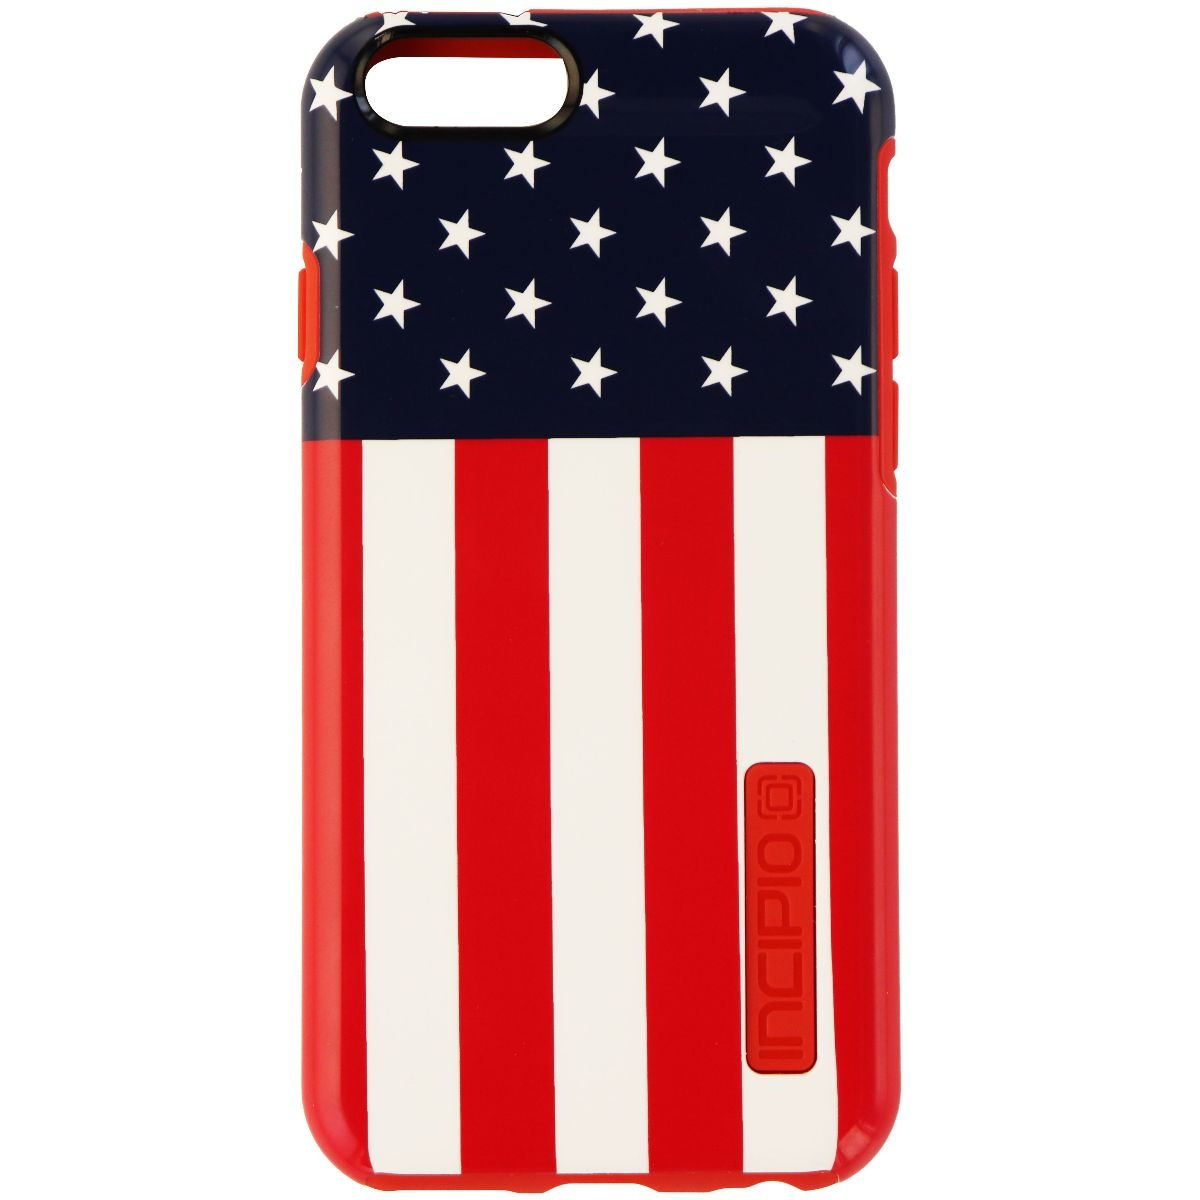 Incipio DualPro Series Dual Layer Case for iPhone 6s 6 - USA Flag/Red